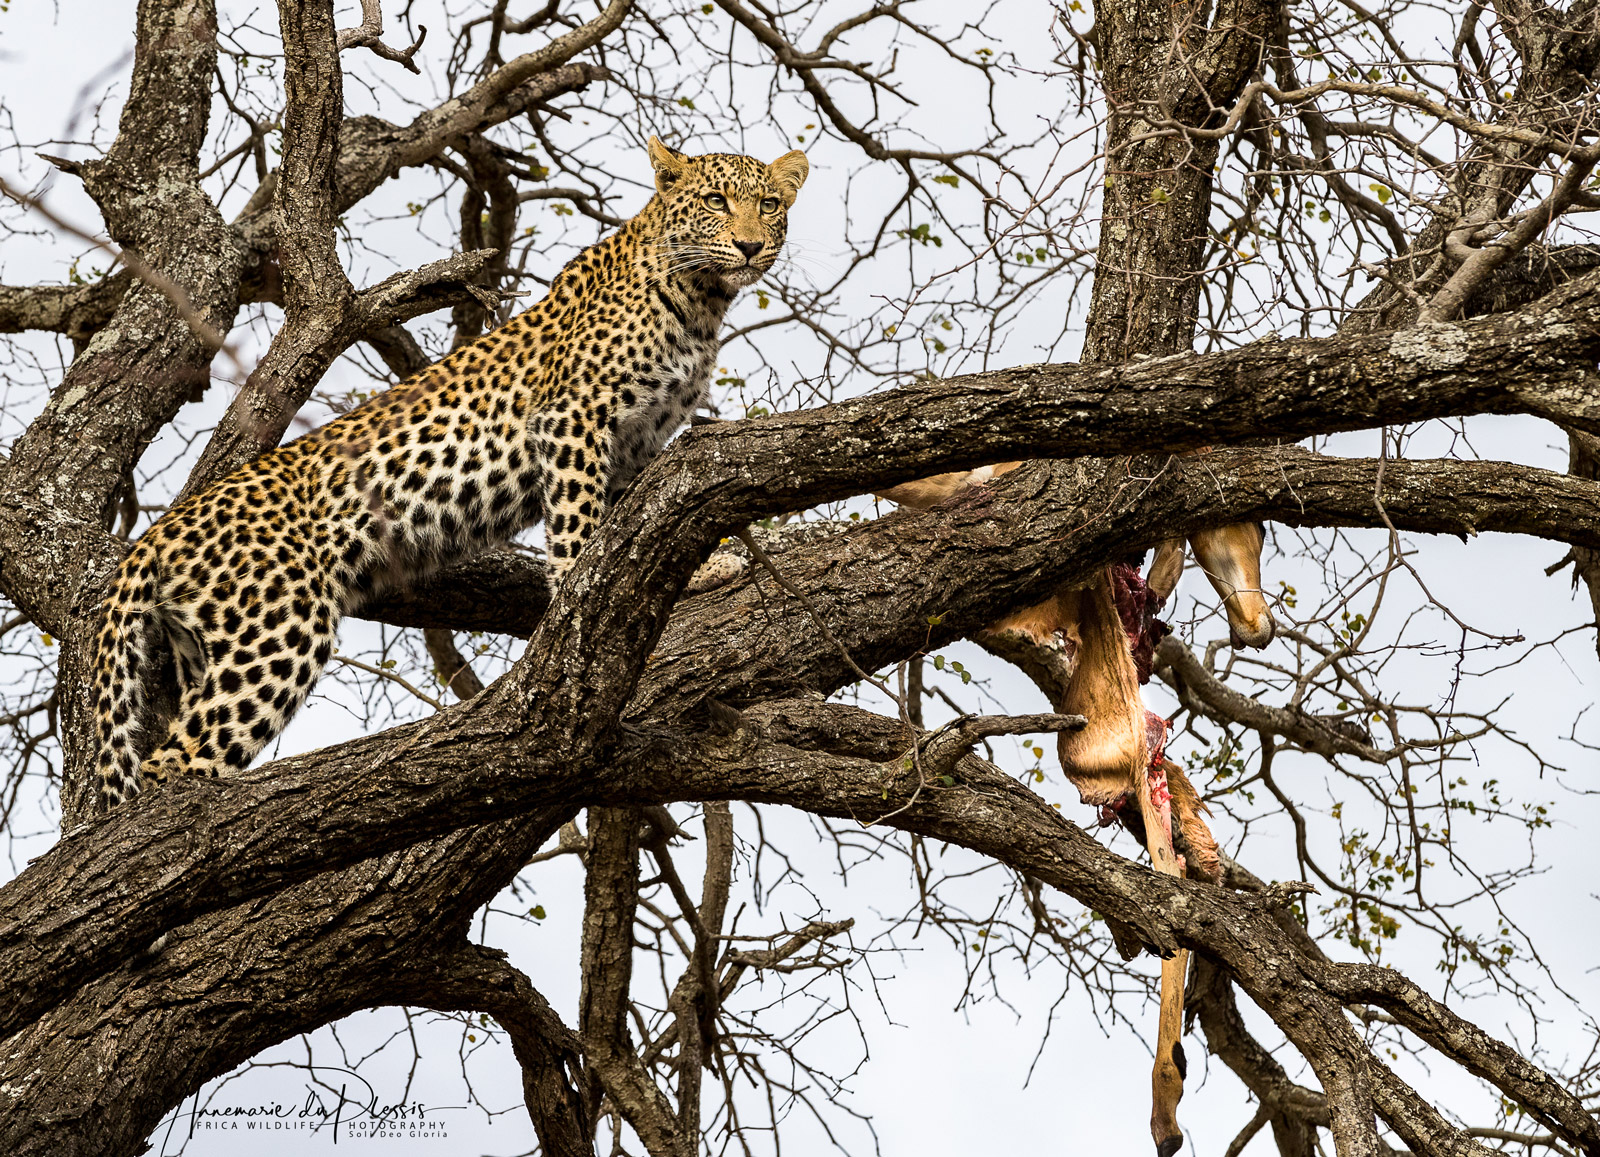 Leopard with kill in a tree